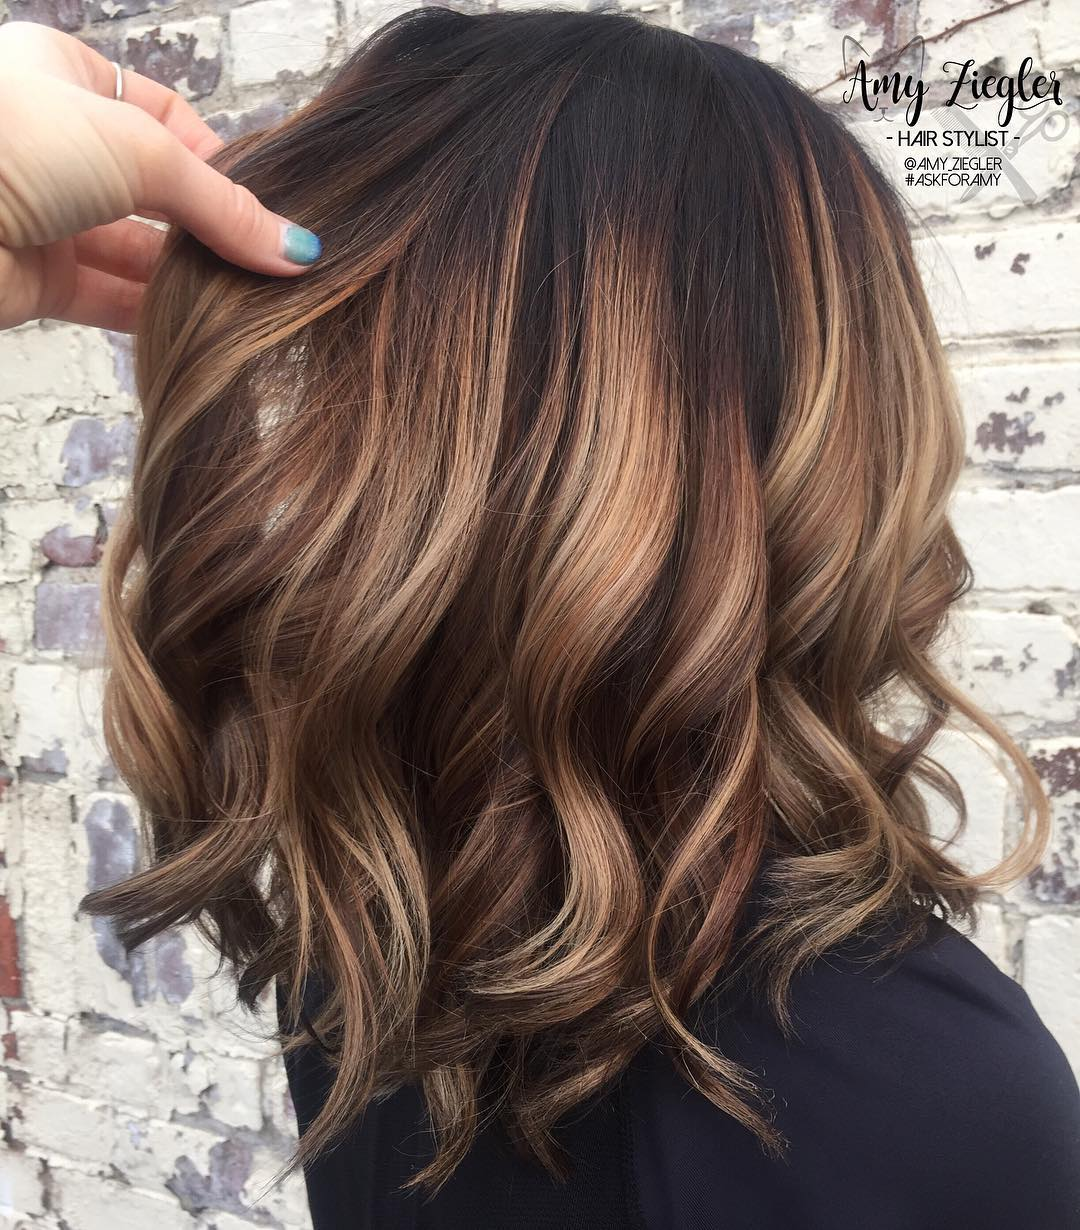 10 Trendy Brown Balayage Hairstyles For Medium Length Hair